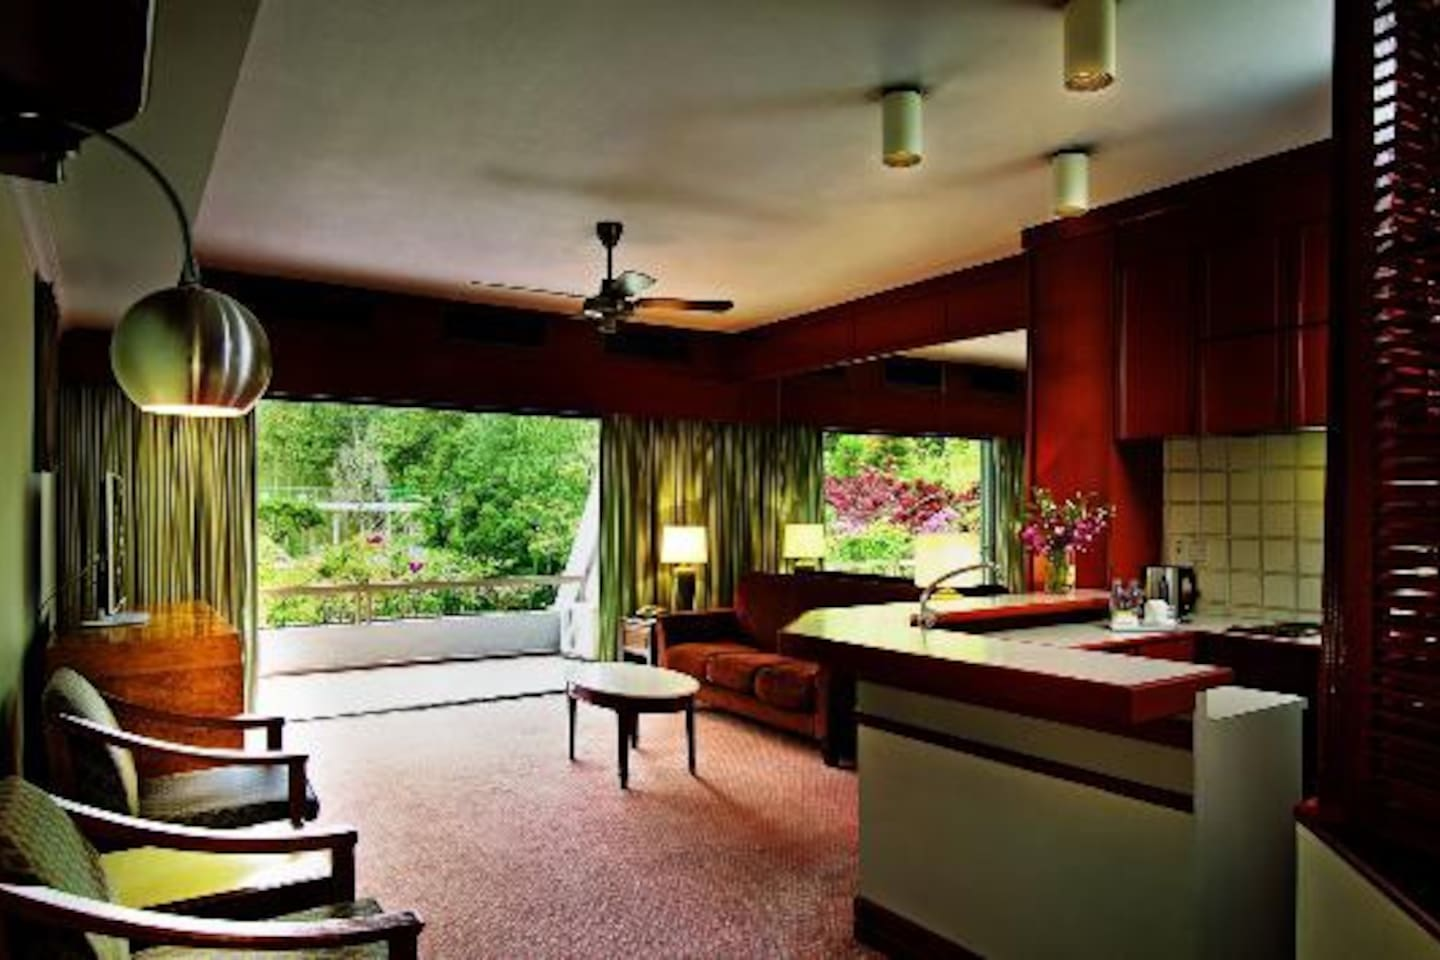 View from kitchen across the living hall into the mountainous view